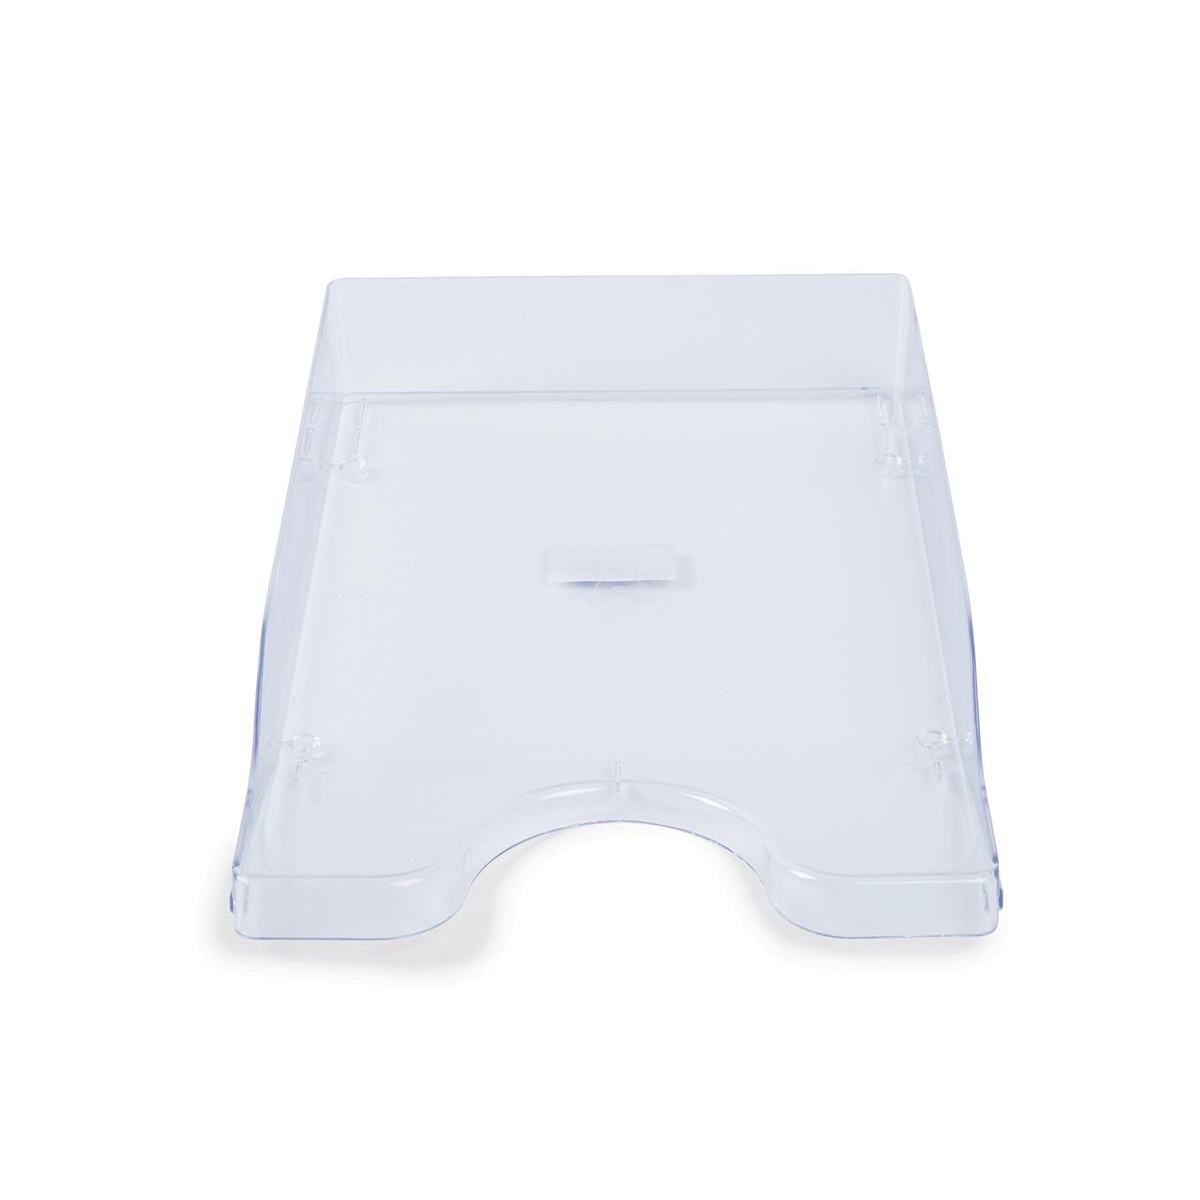 Glass Clear Letter Tray High-Impact Polystyrene for A4/Foolscap W258xD350xH66mm Clear